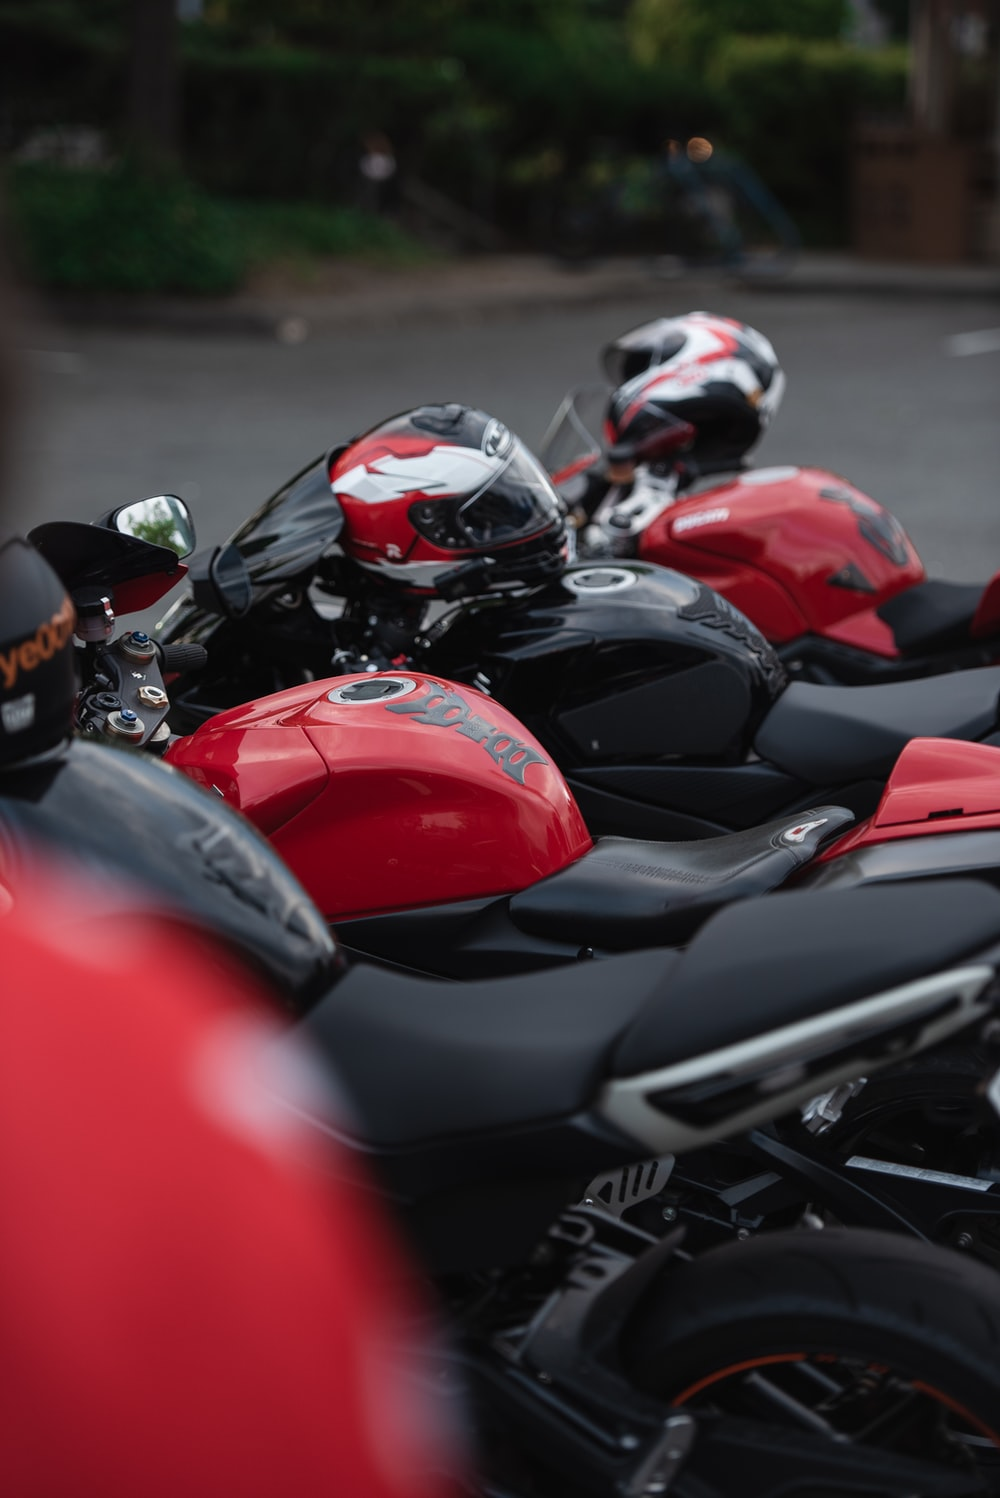 three black-and-red motorcycles